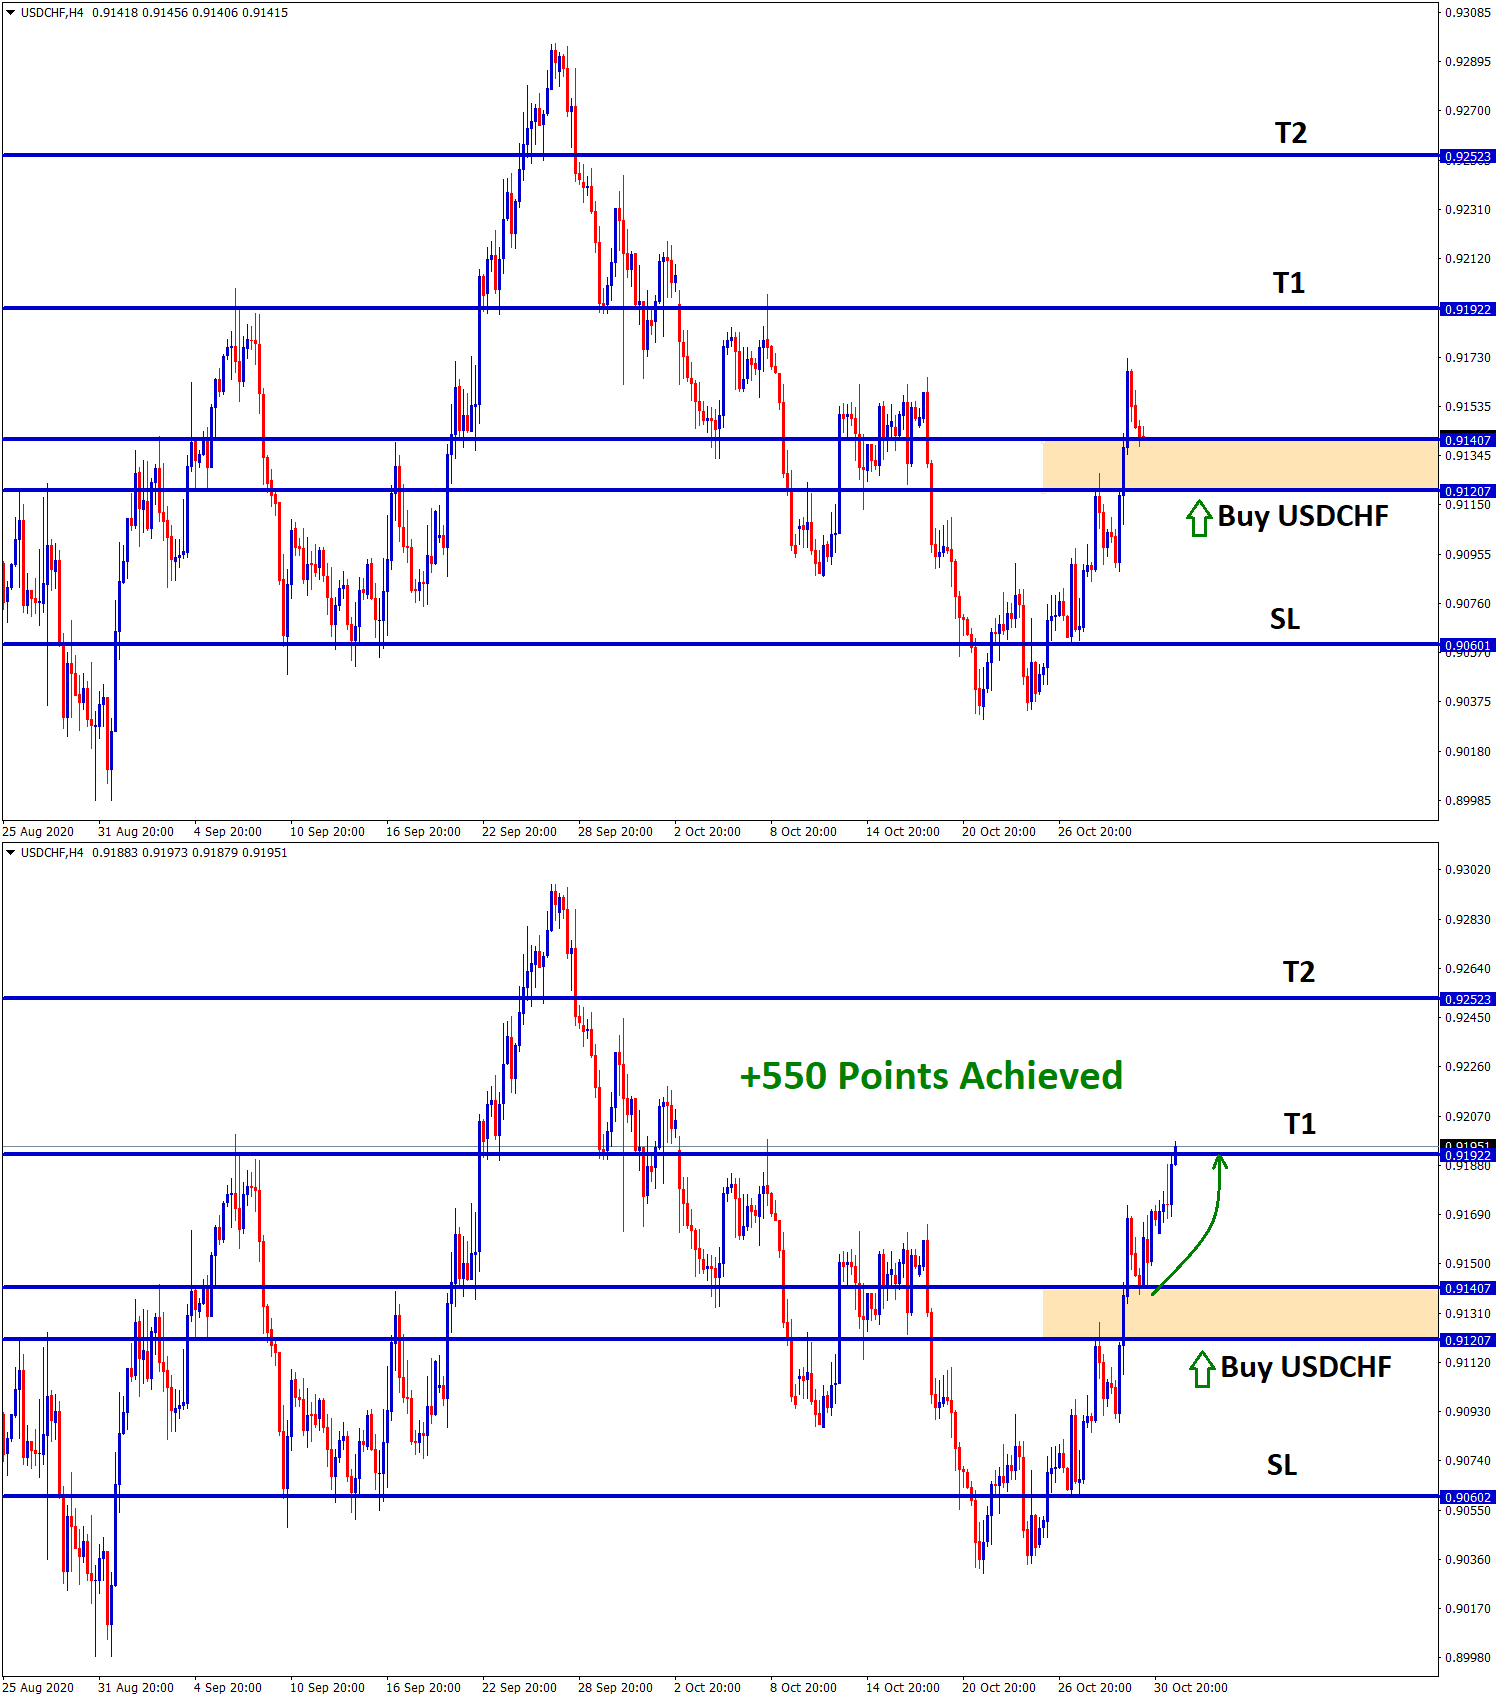 usdchf achieved 550 points profit in buy signal trade